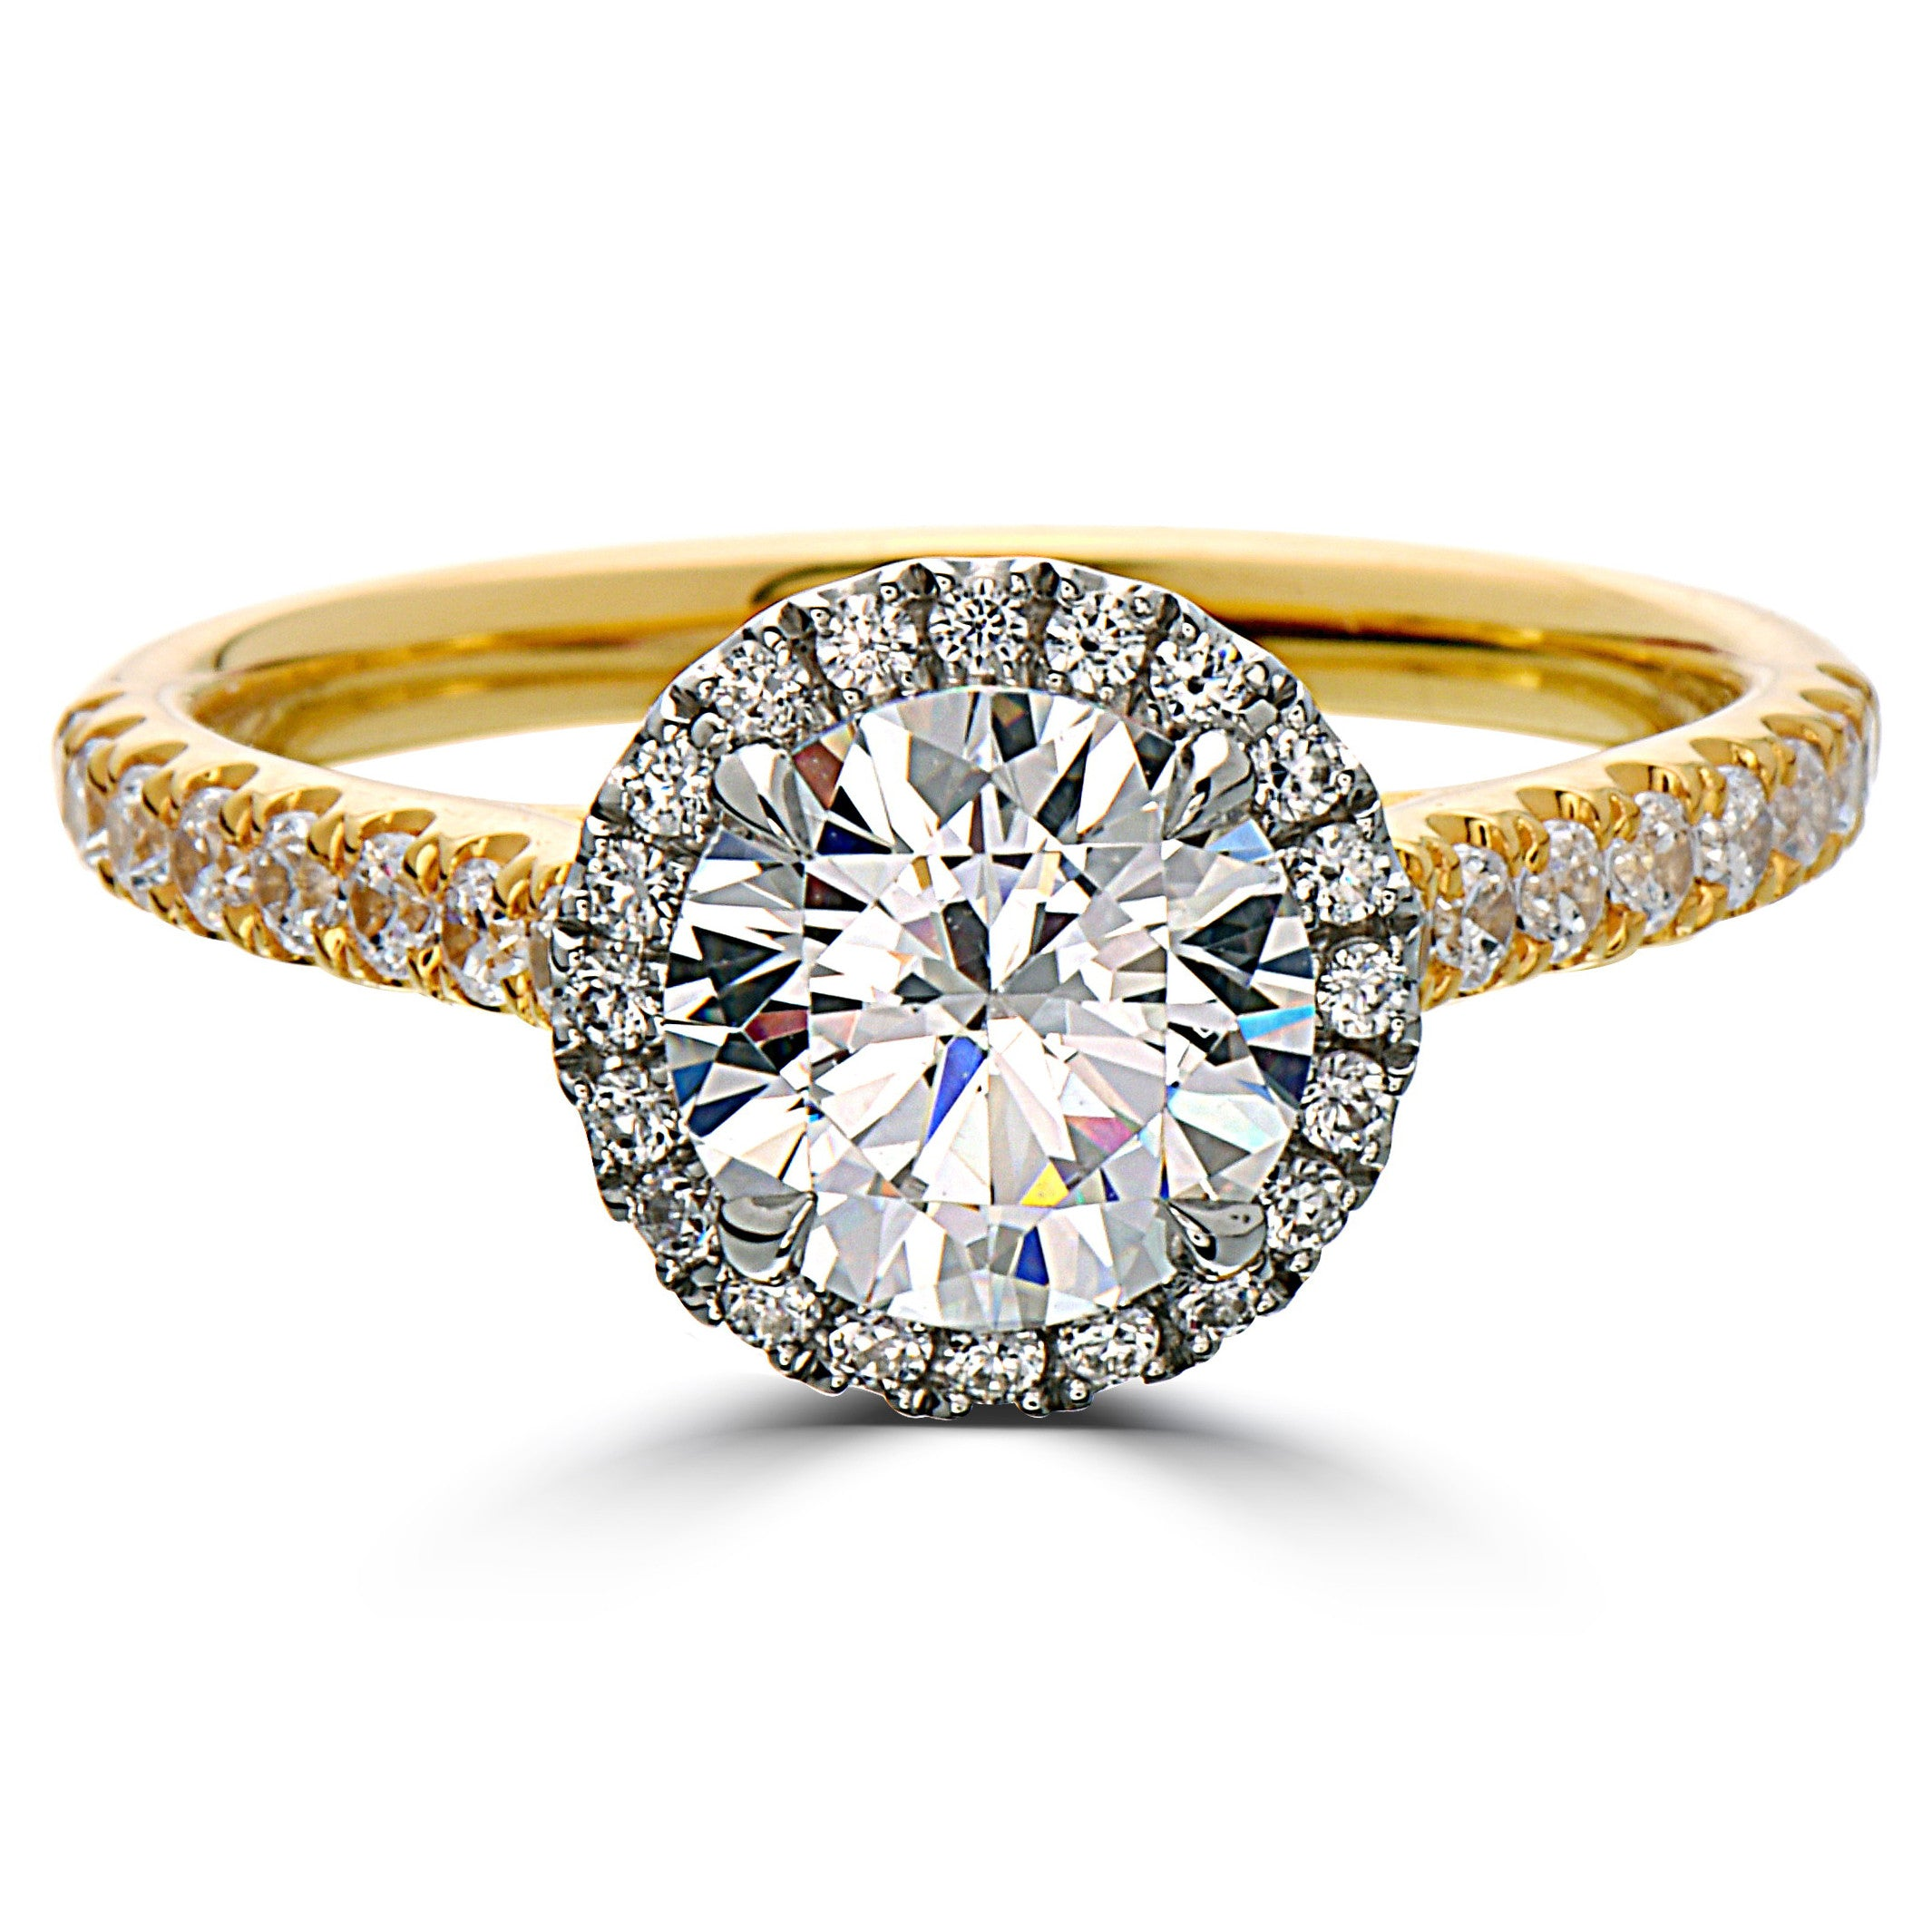 engagement jewellery hand artemer diamond cut ring on one carat marquise products